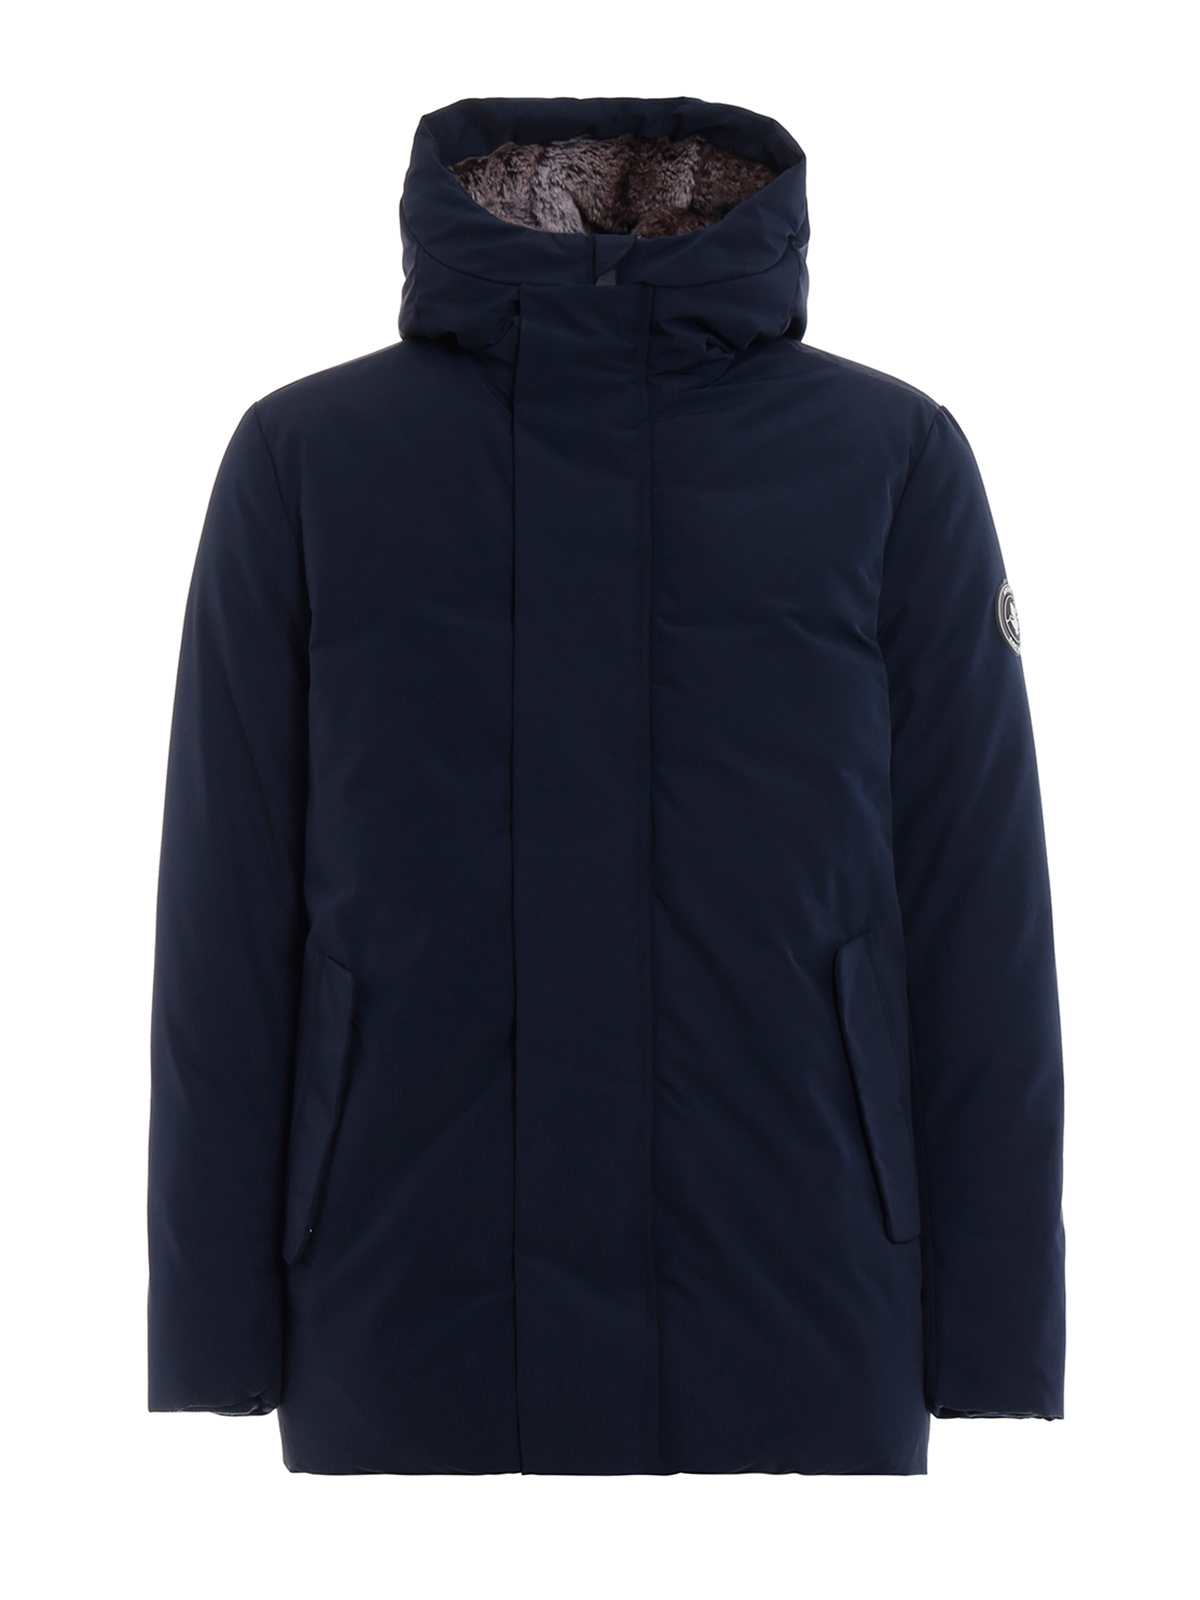 Picture of SAVE THE DUCK | Men's Padded Jacket P3041M COPY7